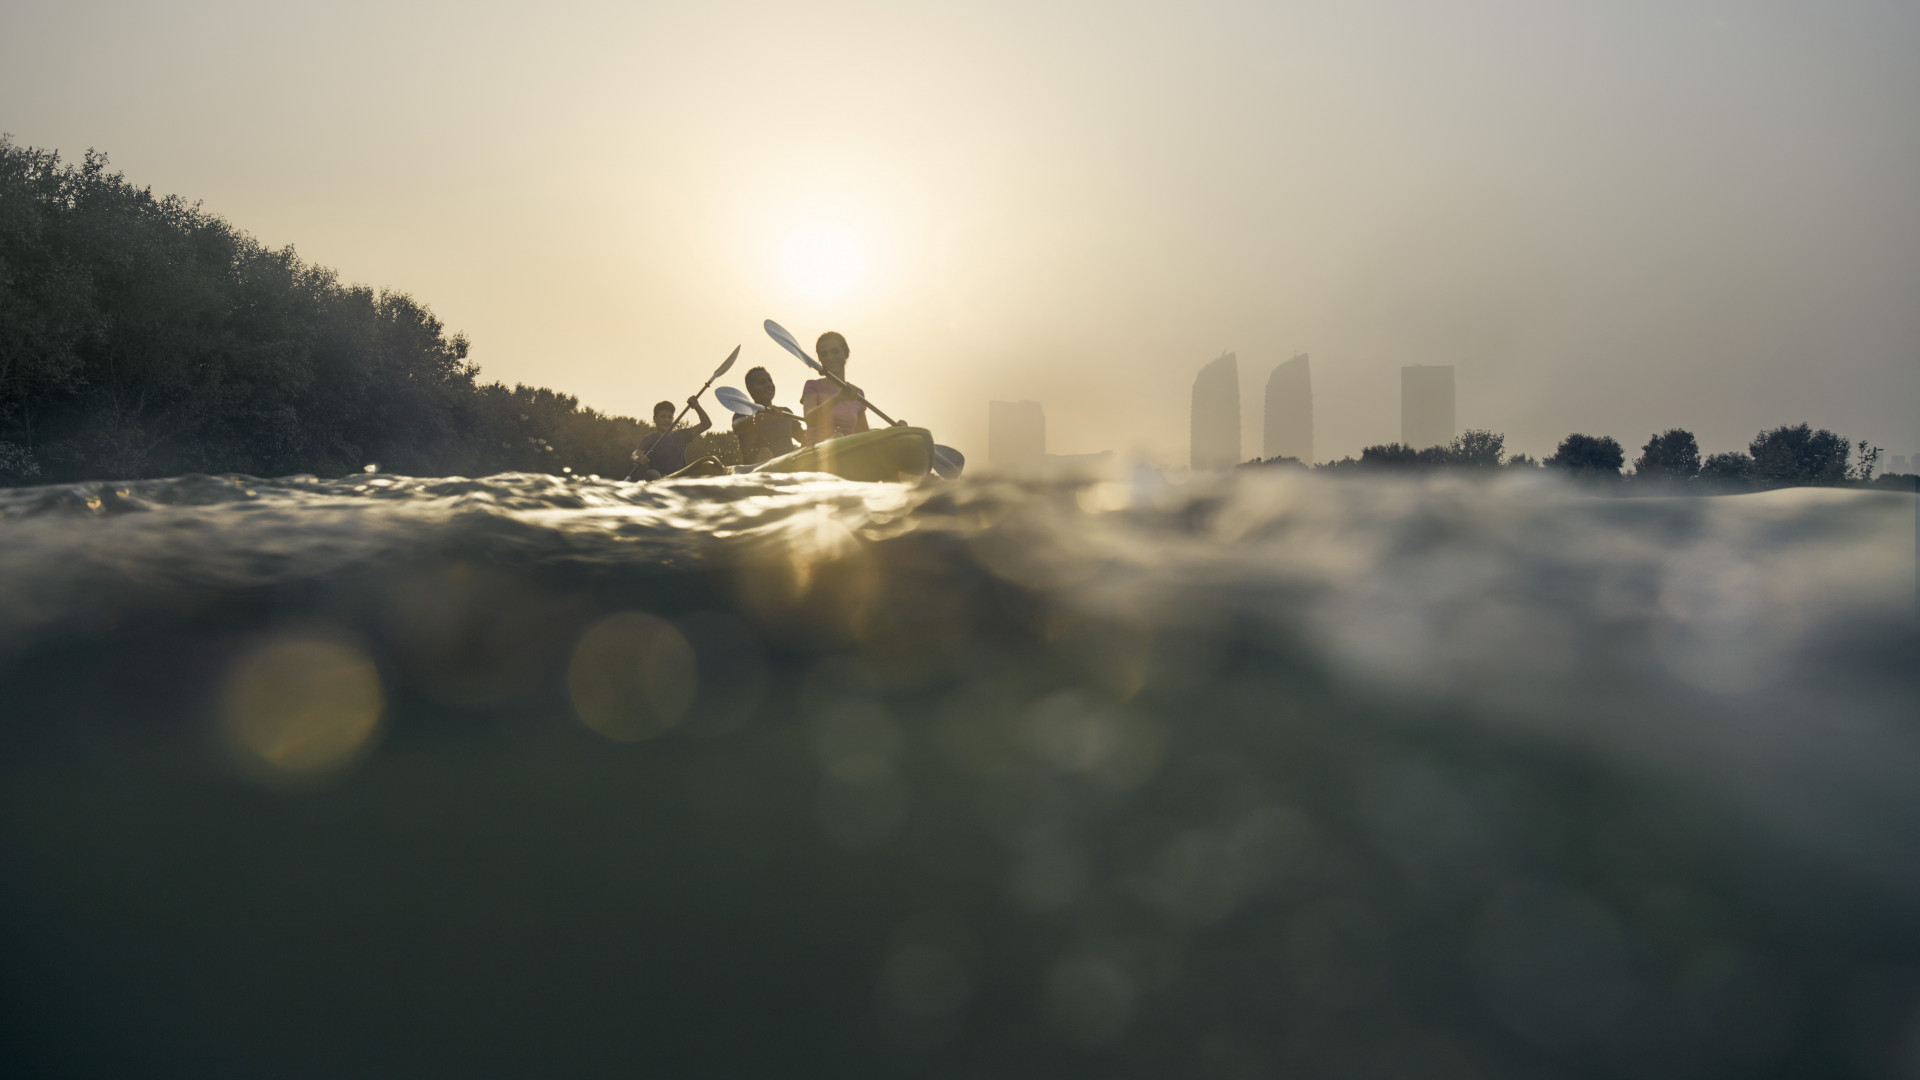 Kayaking in Abu Dhabi's East Mangrove National Park